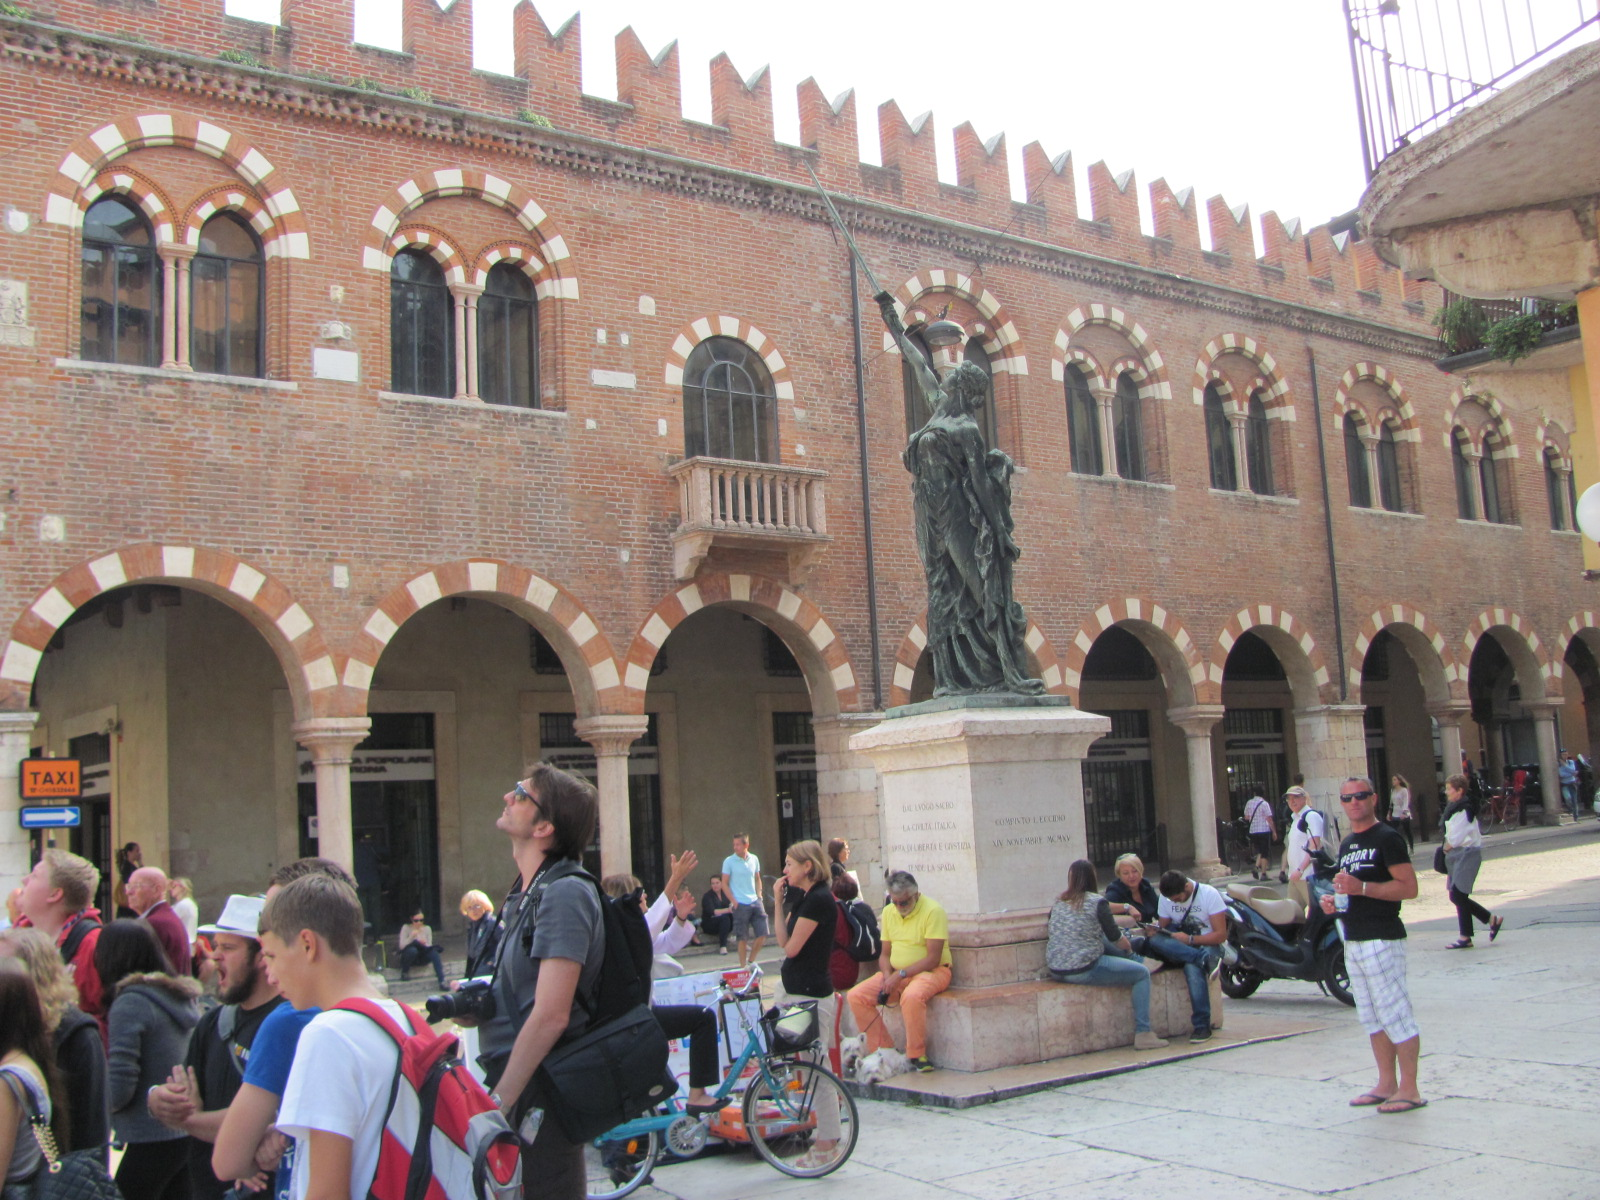 A Bank on Piazza Erbe